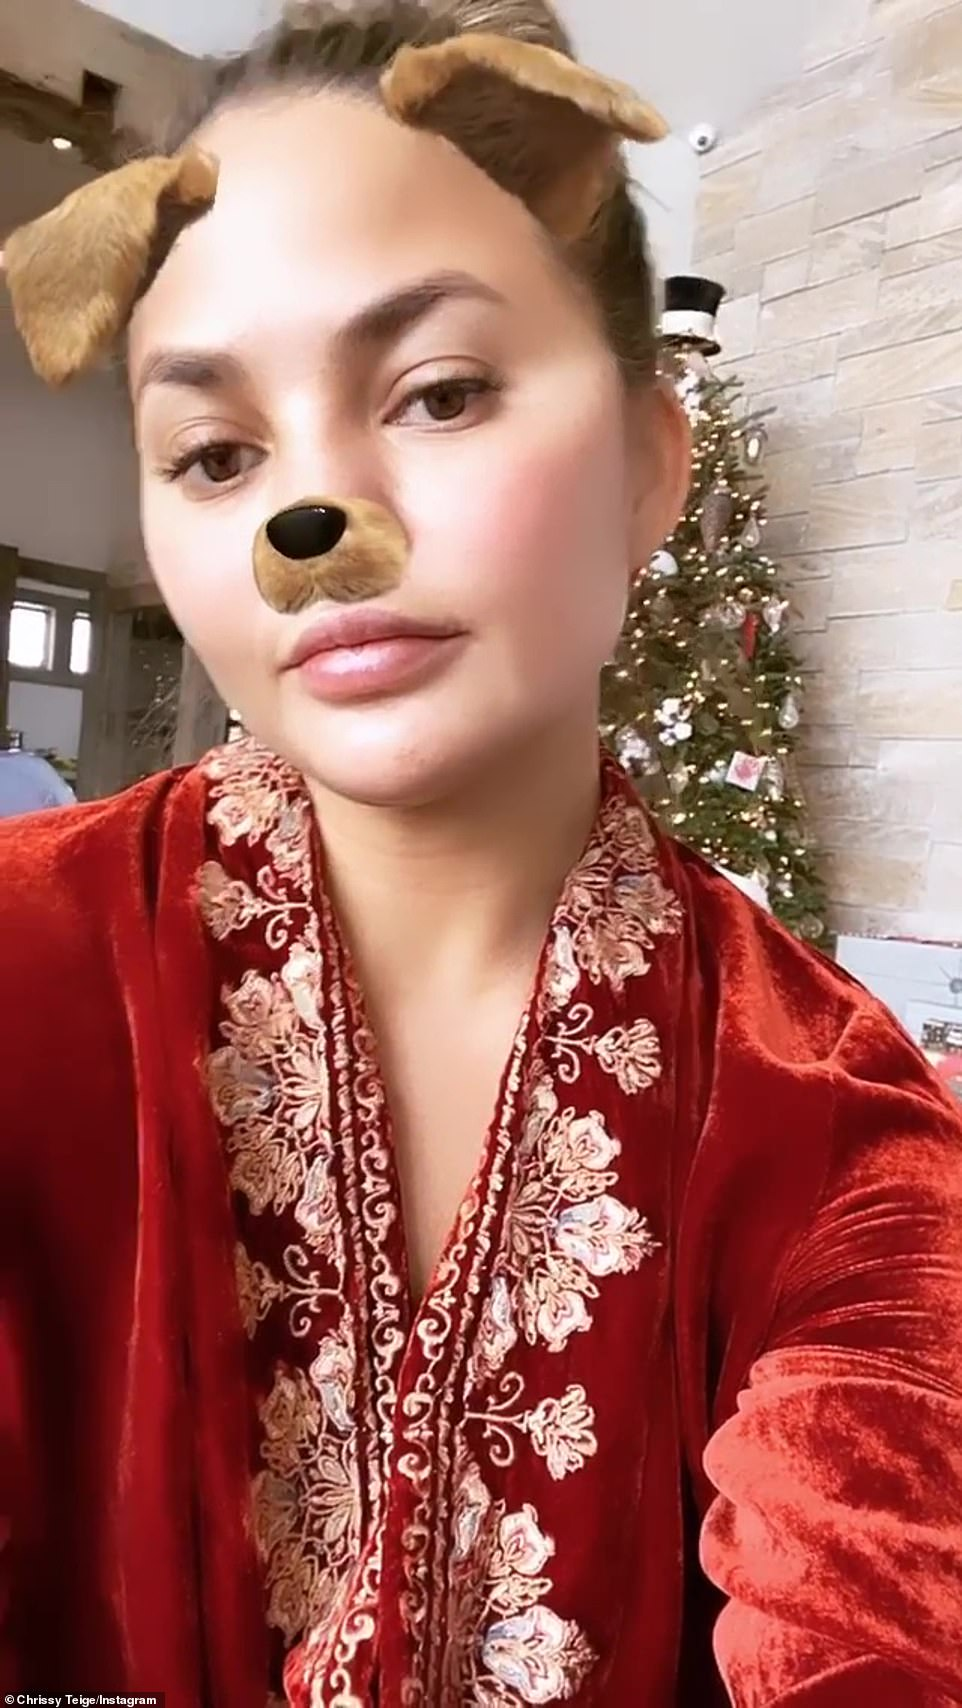 Perfect pup: Social media queen Chrissy Teigen uploaded a selfie video with a puppy filter in red velvet pj's in front of a tree